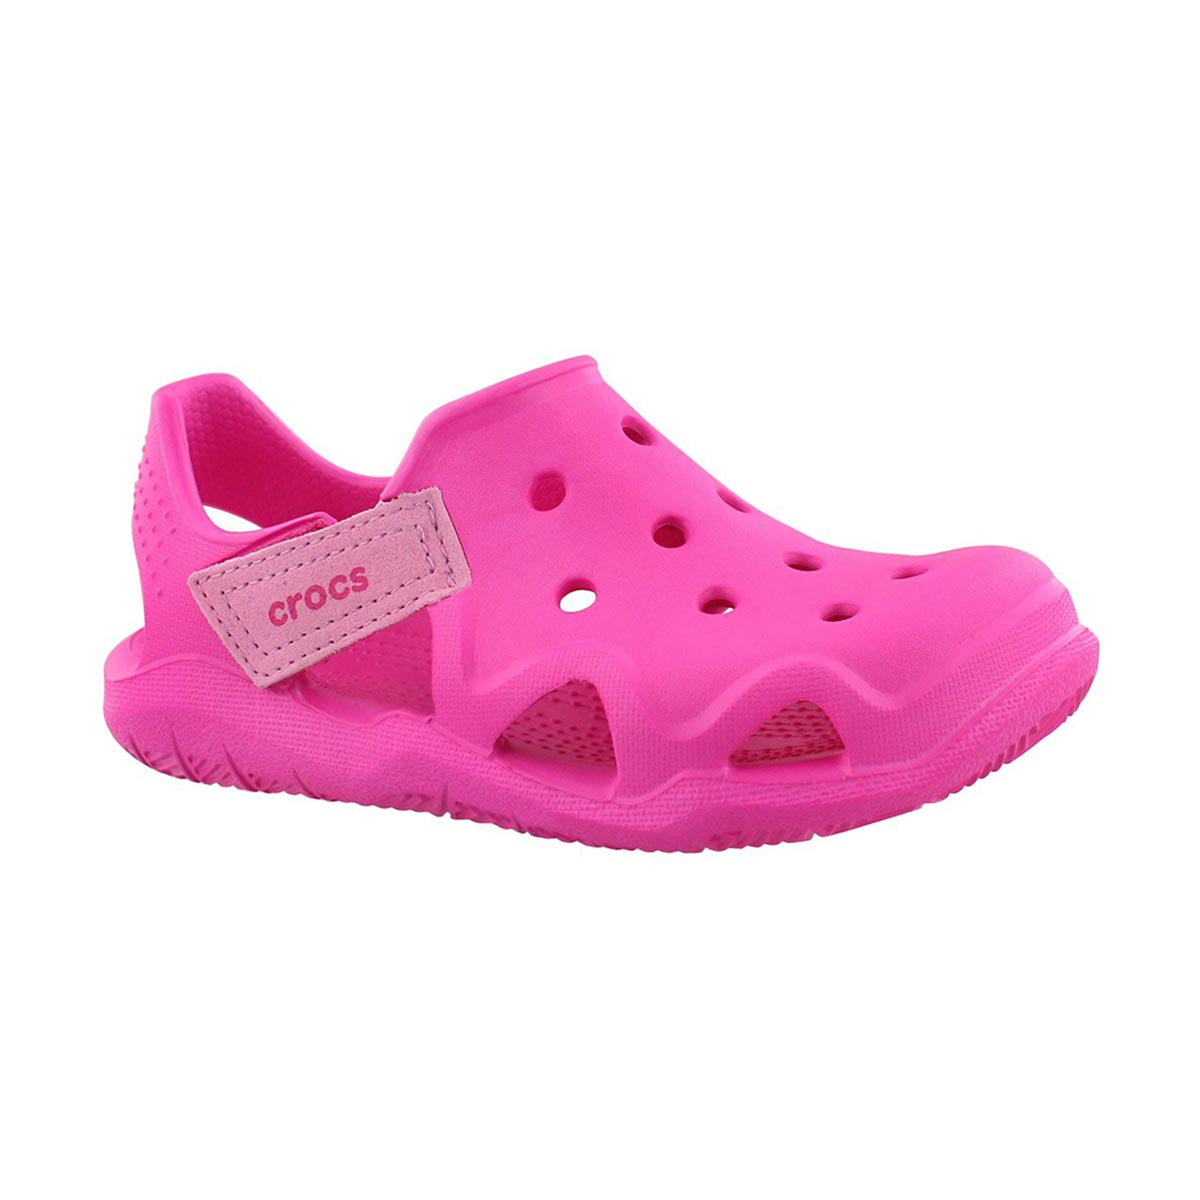 swiftwater girls Crocs kid's swiftwater sandal at swimoutletcom – the web's most popular swim shop.